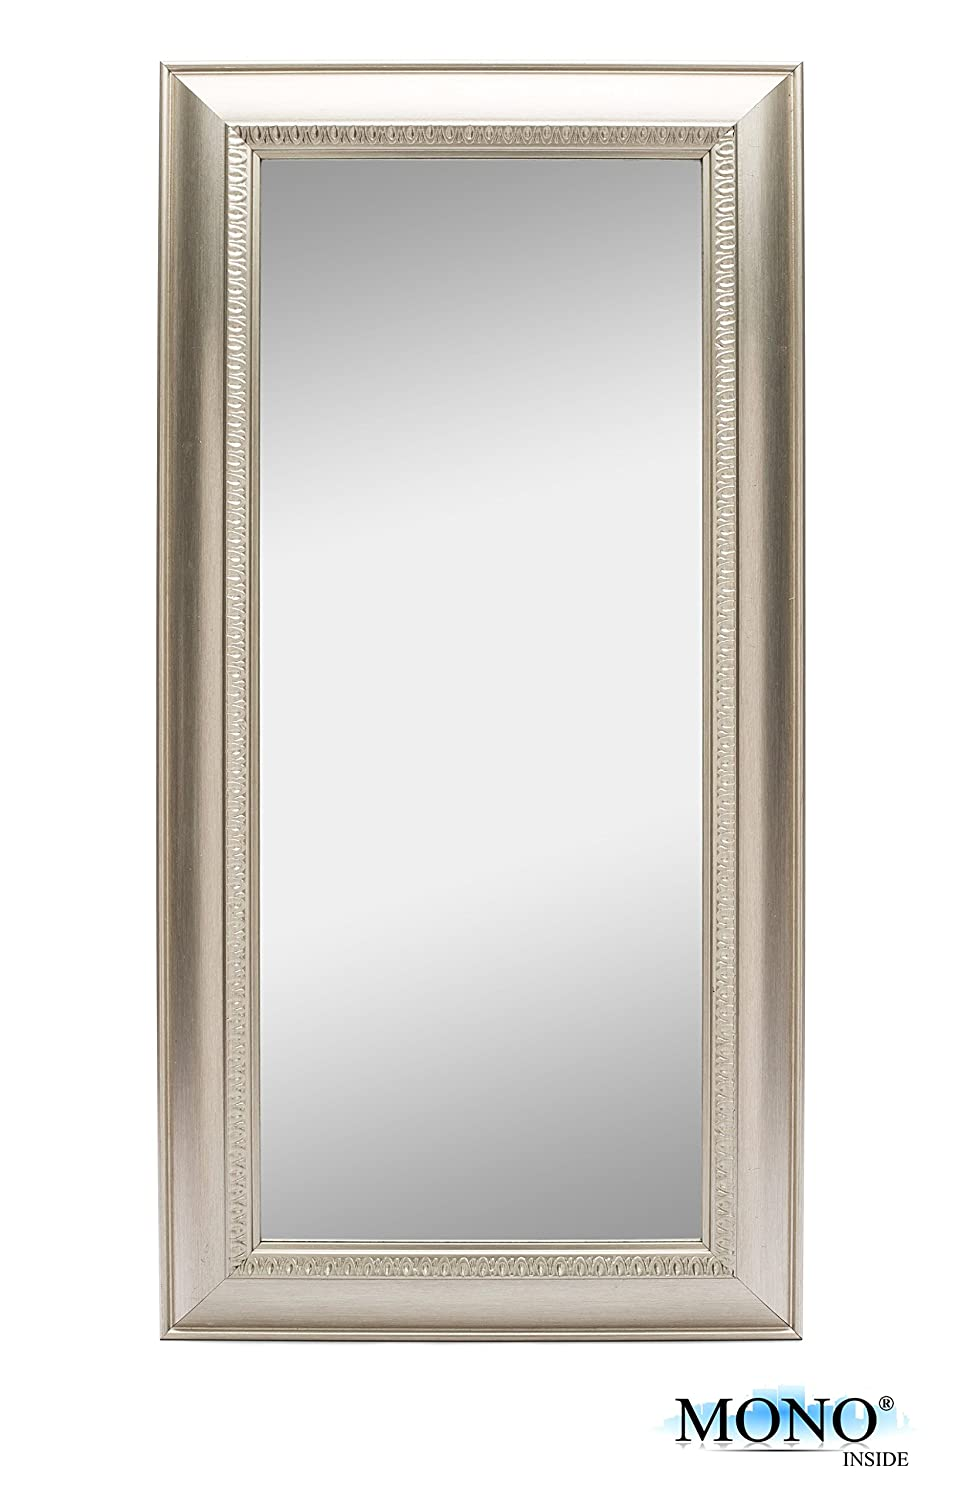 Amazon.com: MONOINSIDE Framed Decorative Wall Mounted Mirror ...